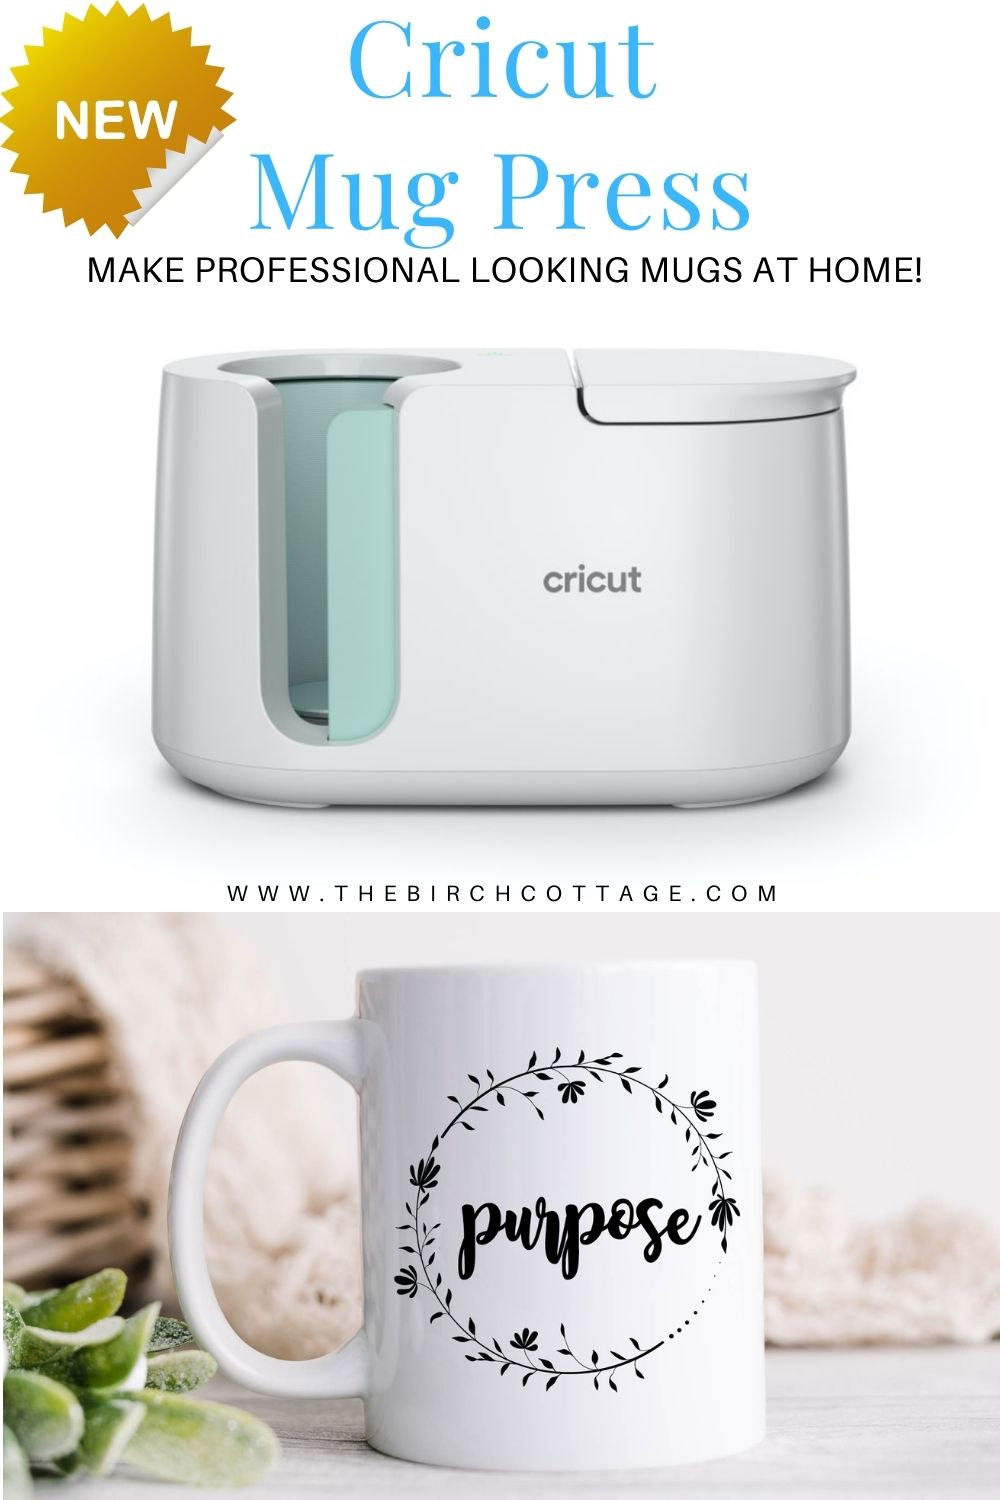 """Cricut Mug Press with coffee cup that says """"purpose"""" and wreath design"""